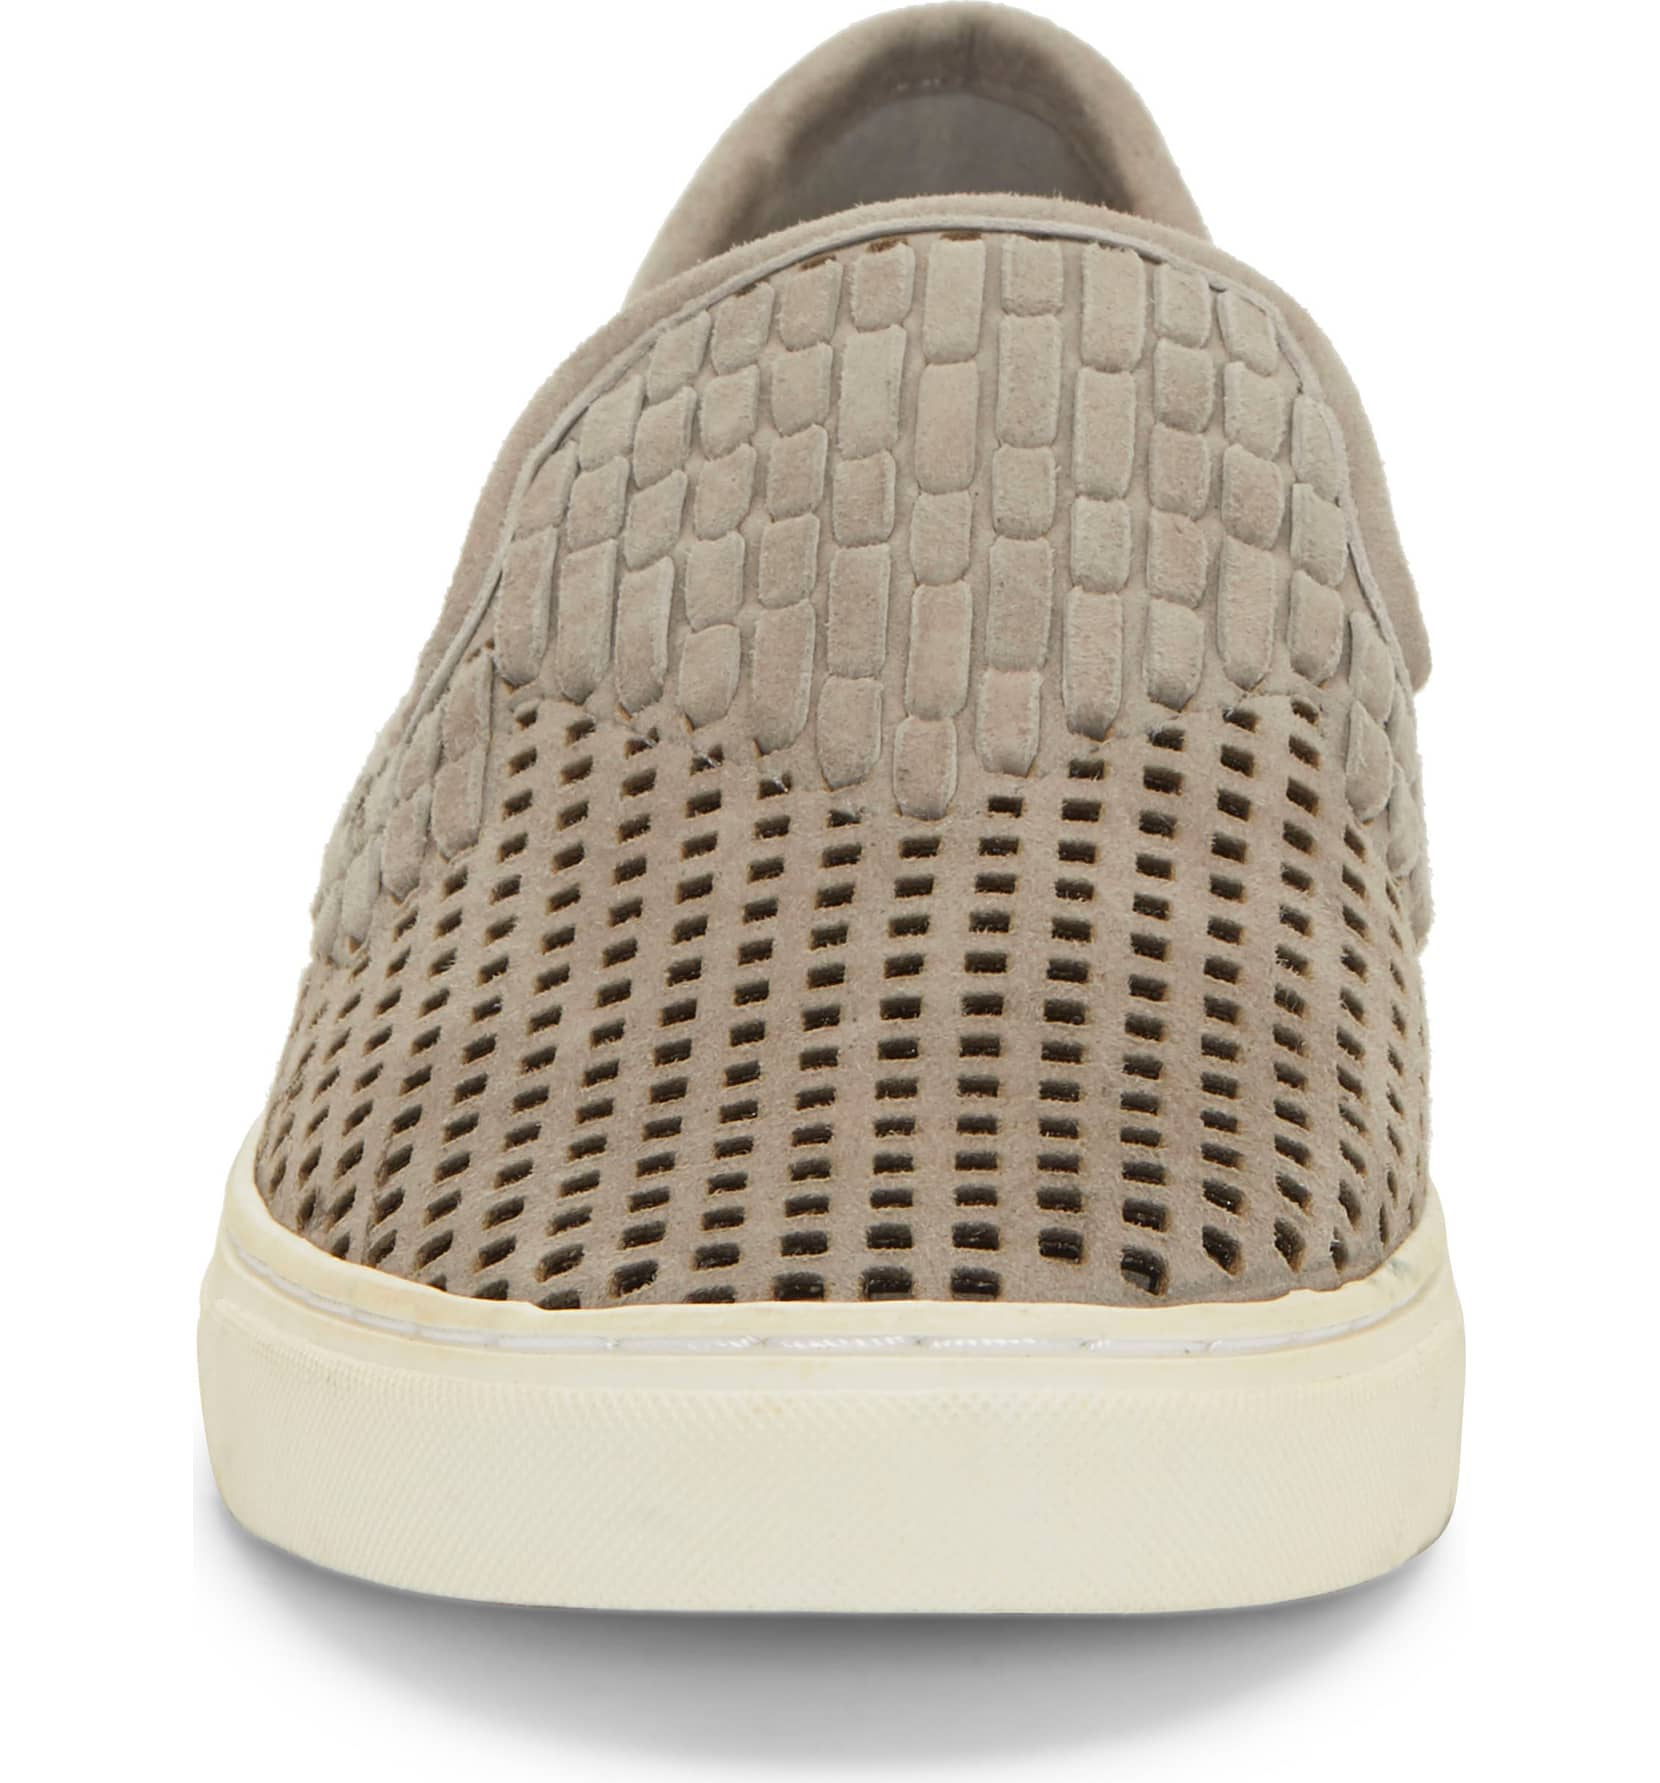 Vince-Camuto-Bristie-Storm-Grey-Leather-Woven-White-Sole-Slip-On-Sneakers thumbnail 34